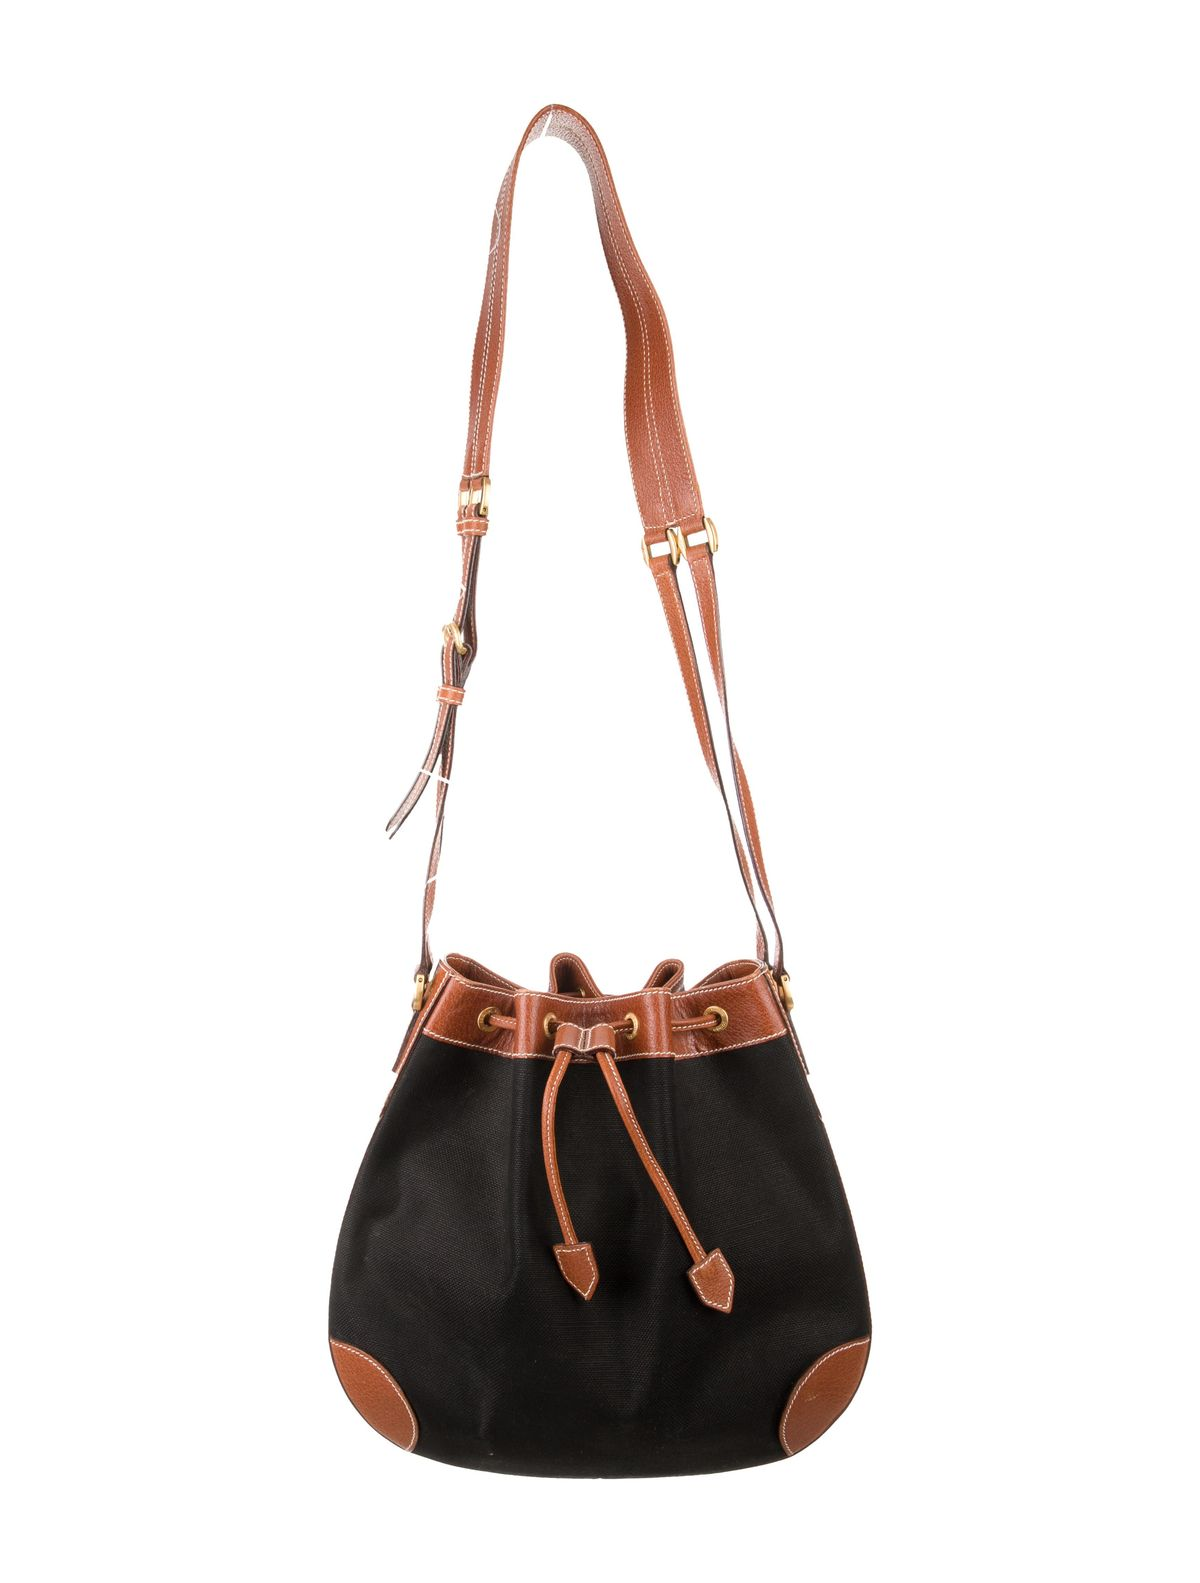 the real real consigned Black Micro GG canvas vintage Gucci bucket bag with gold-tone hardware, contrast stitching throughout, single flat shoulder strap, caramel leather trim, brick interior lining, zip pocket at interior wall and drawstring closures at top.